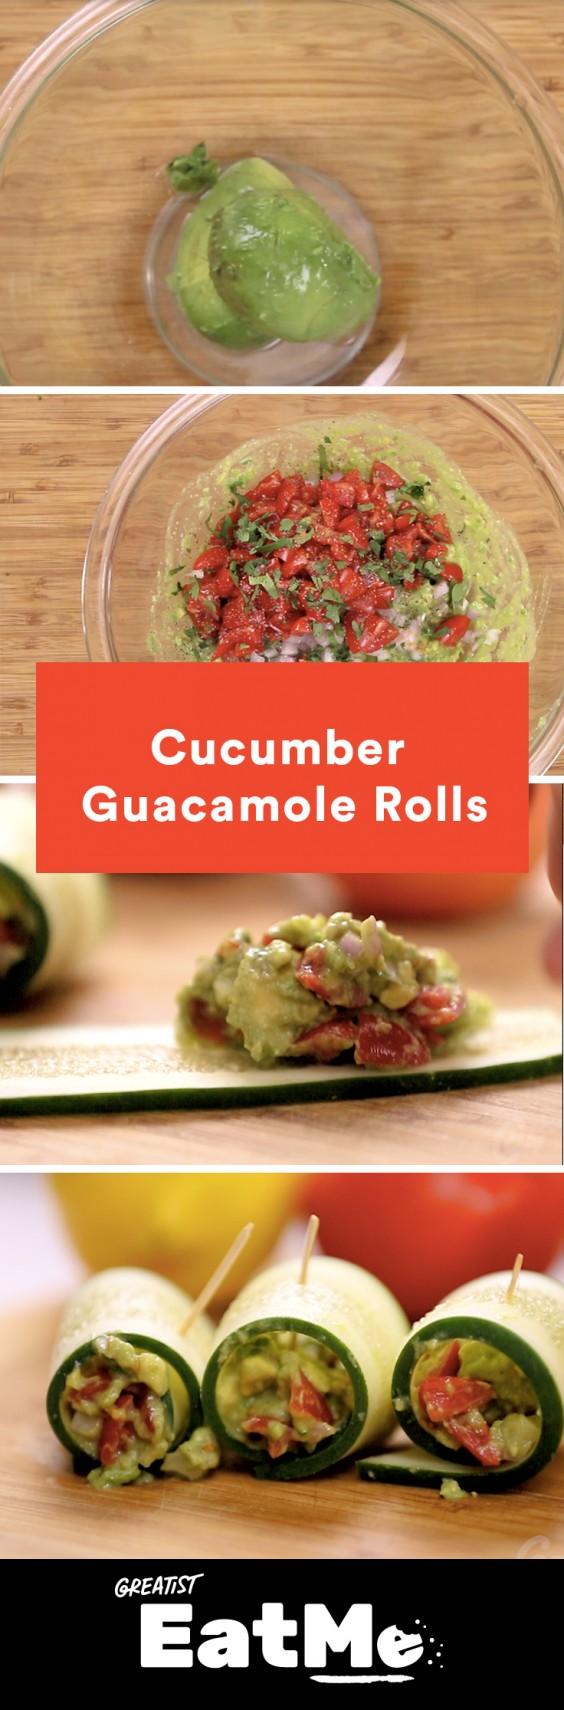 Eat Me Video: Cucumber Guac Rolls